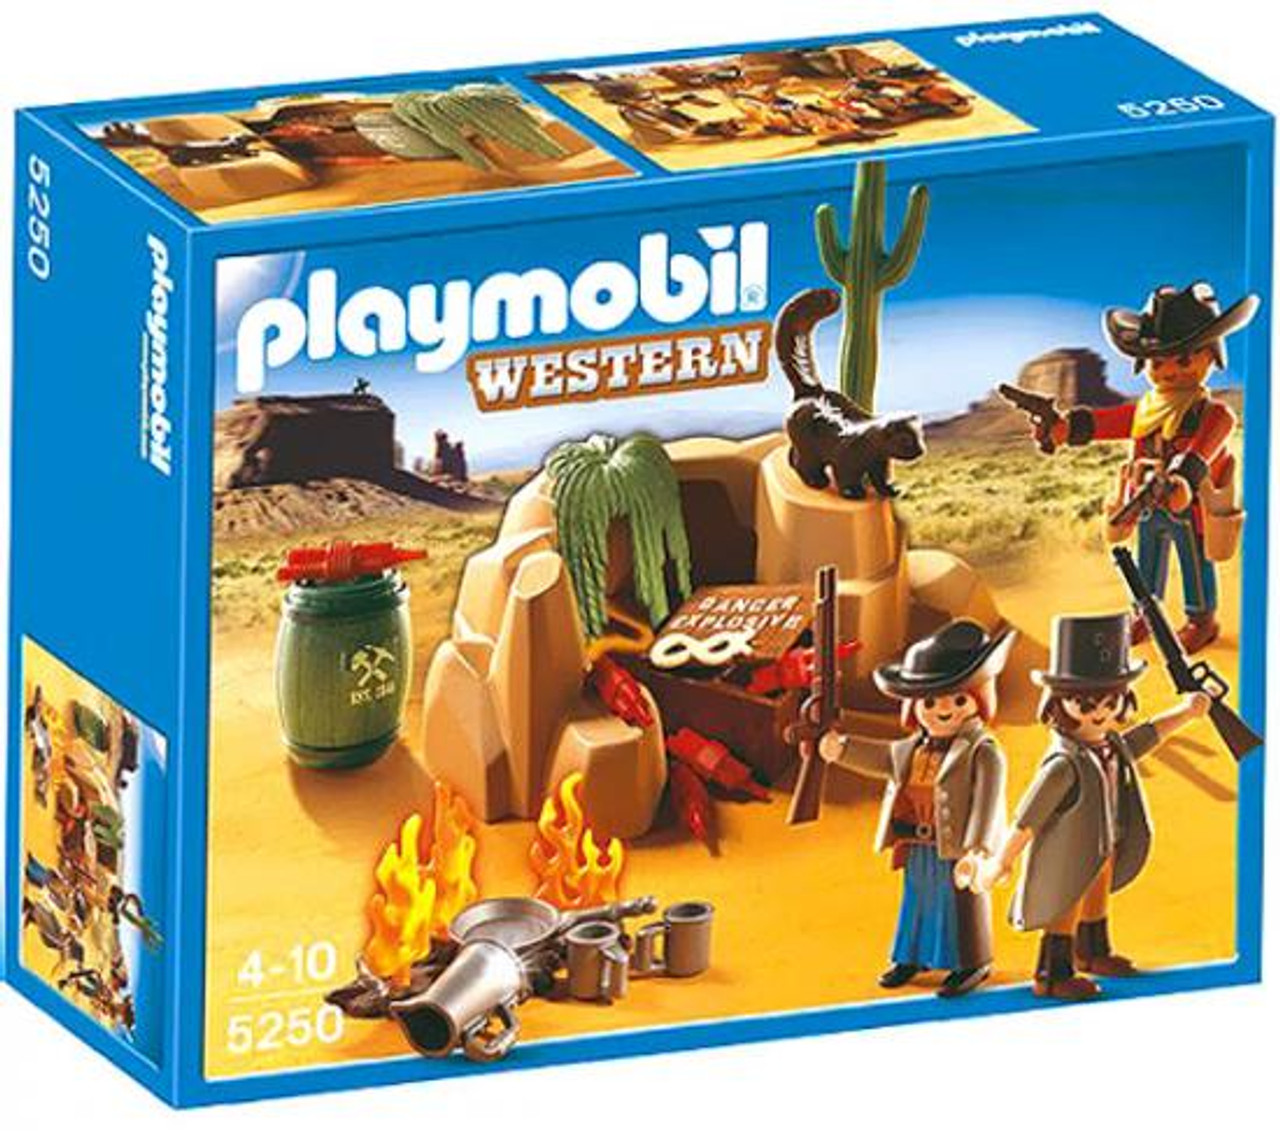 Playmobil Western Outlaw Hideout Set #5250